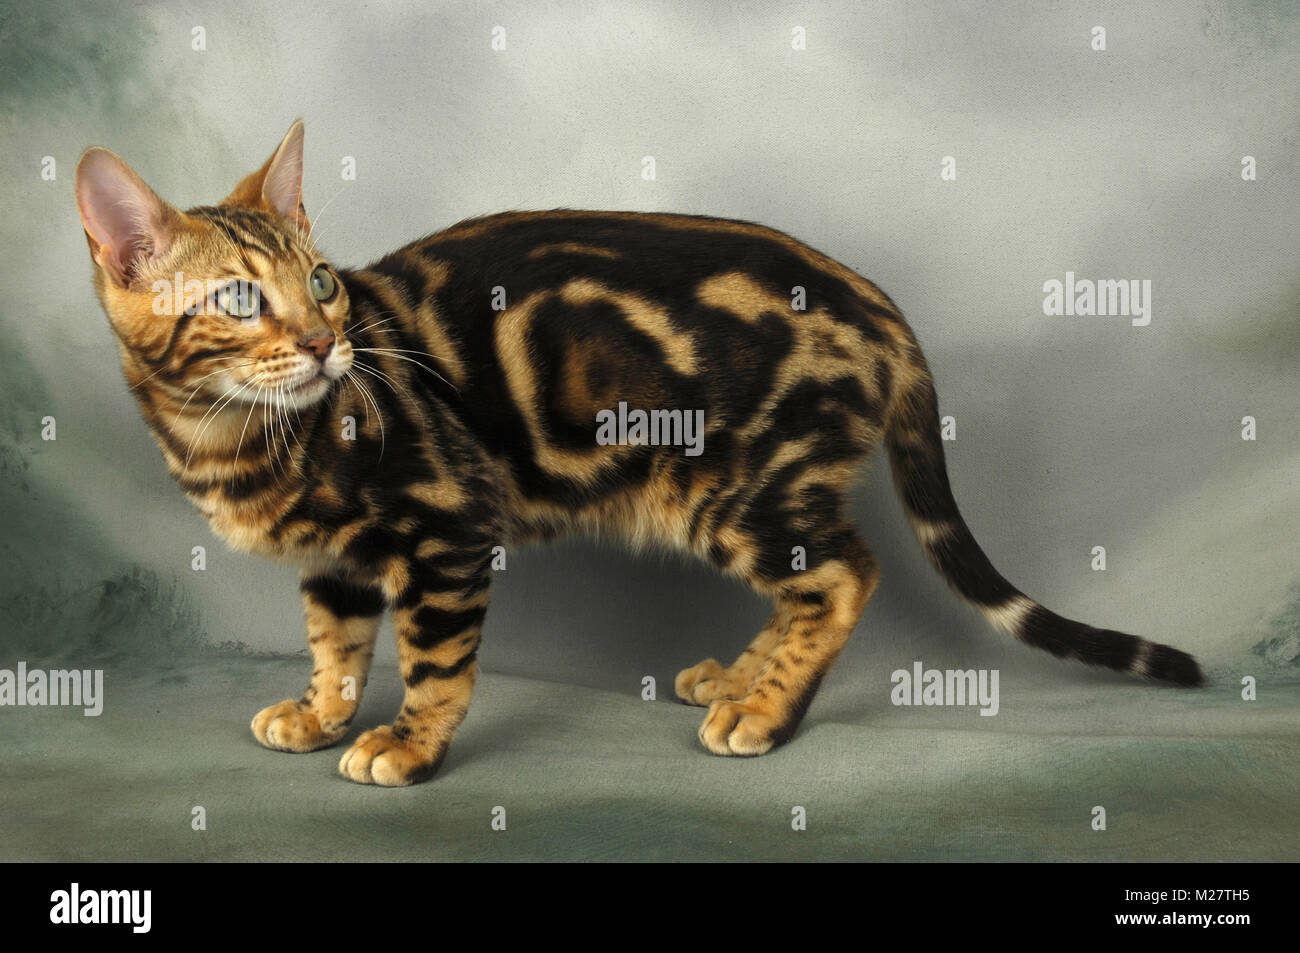 3f3882af46 Marble Bengal Cat Stock Photos   Marble Bengal Cat Stock Images - Alamy